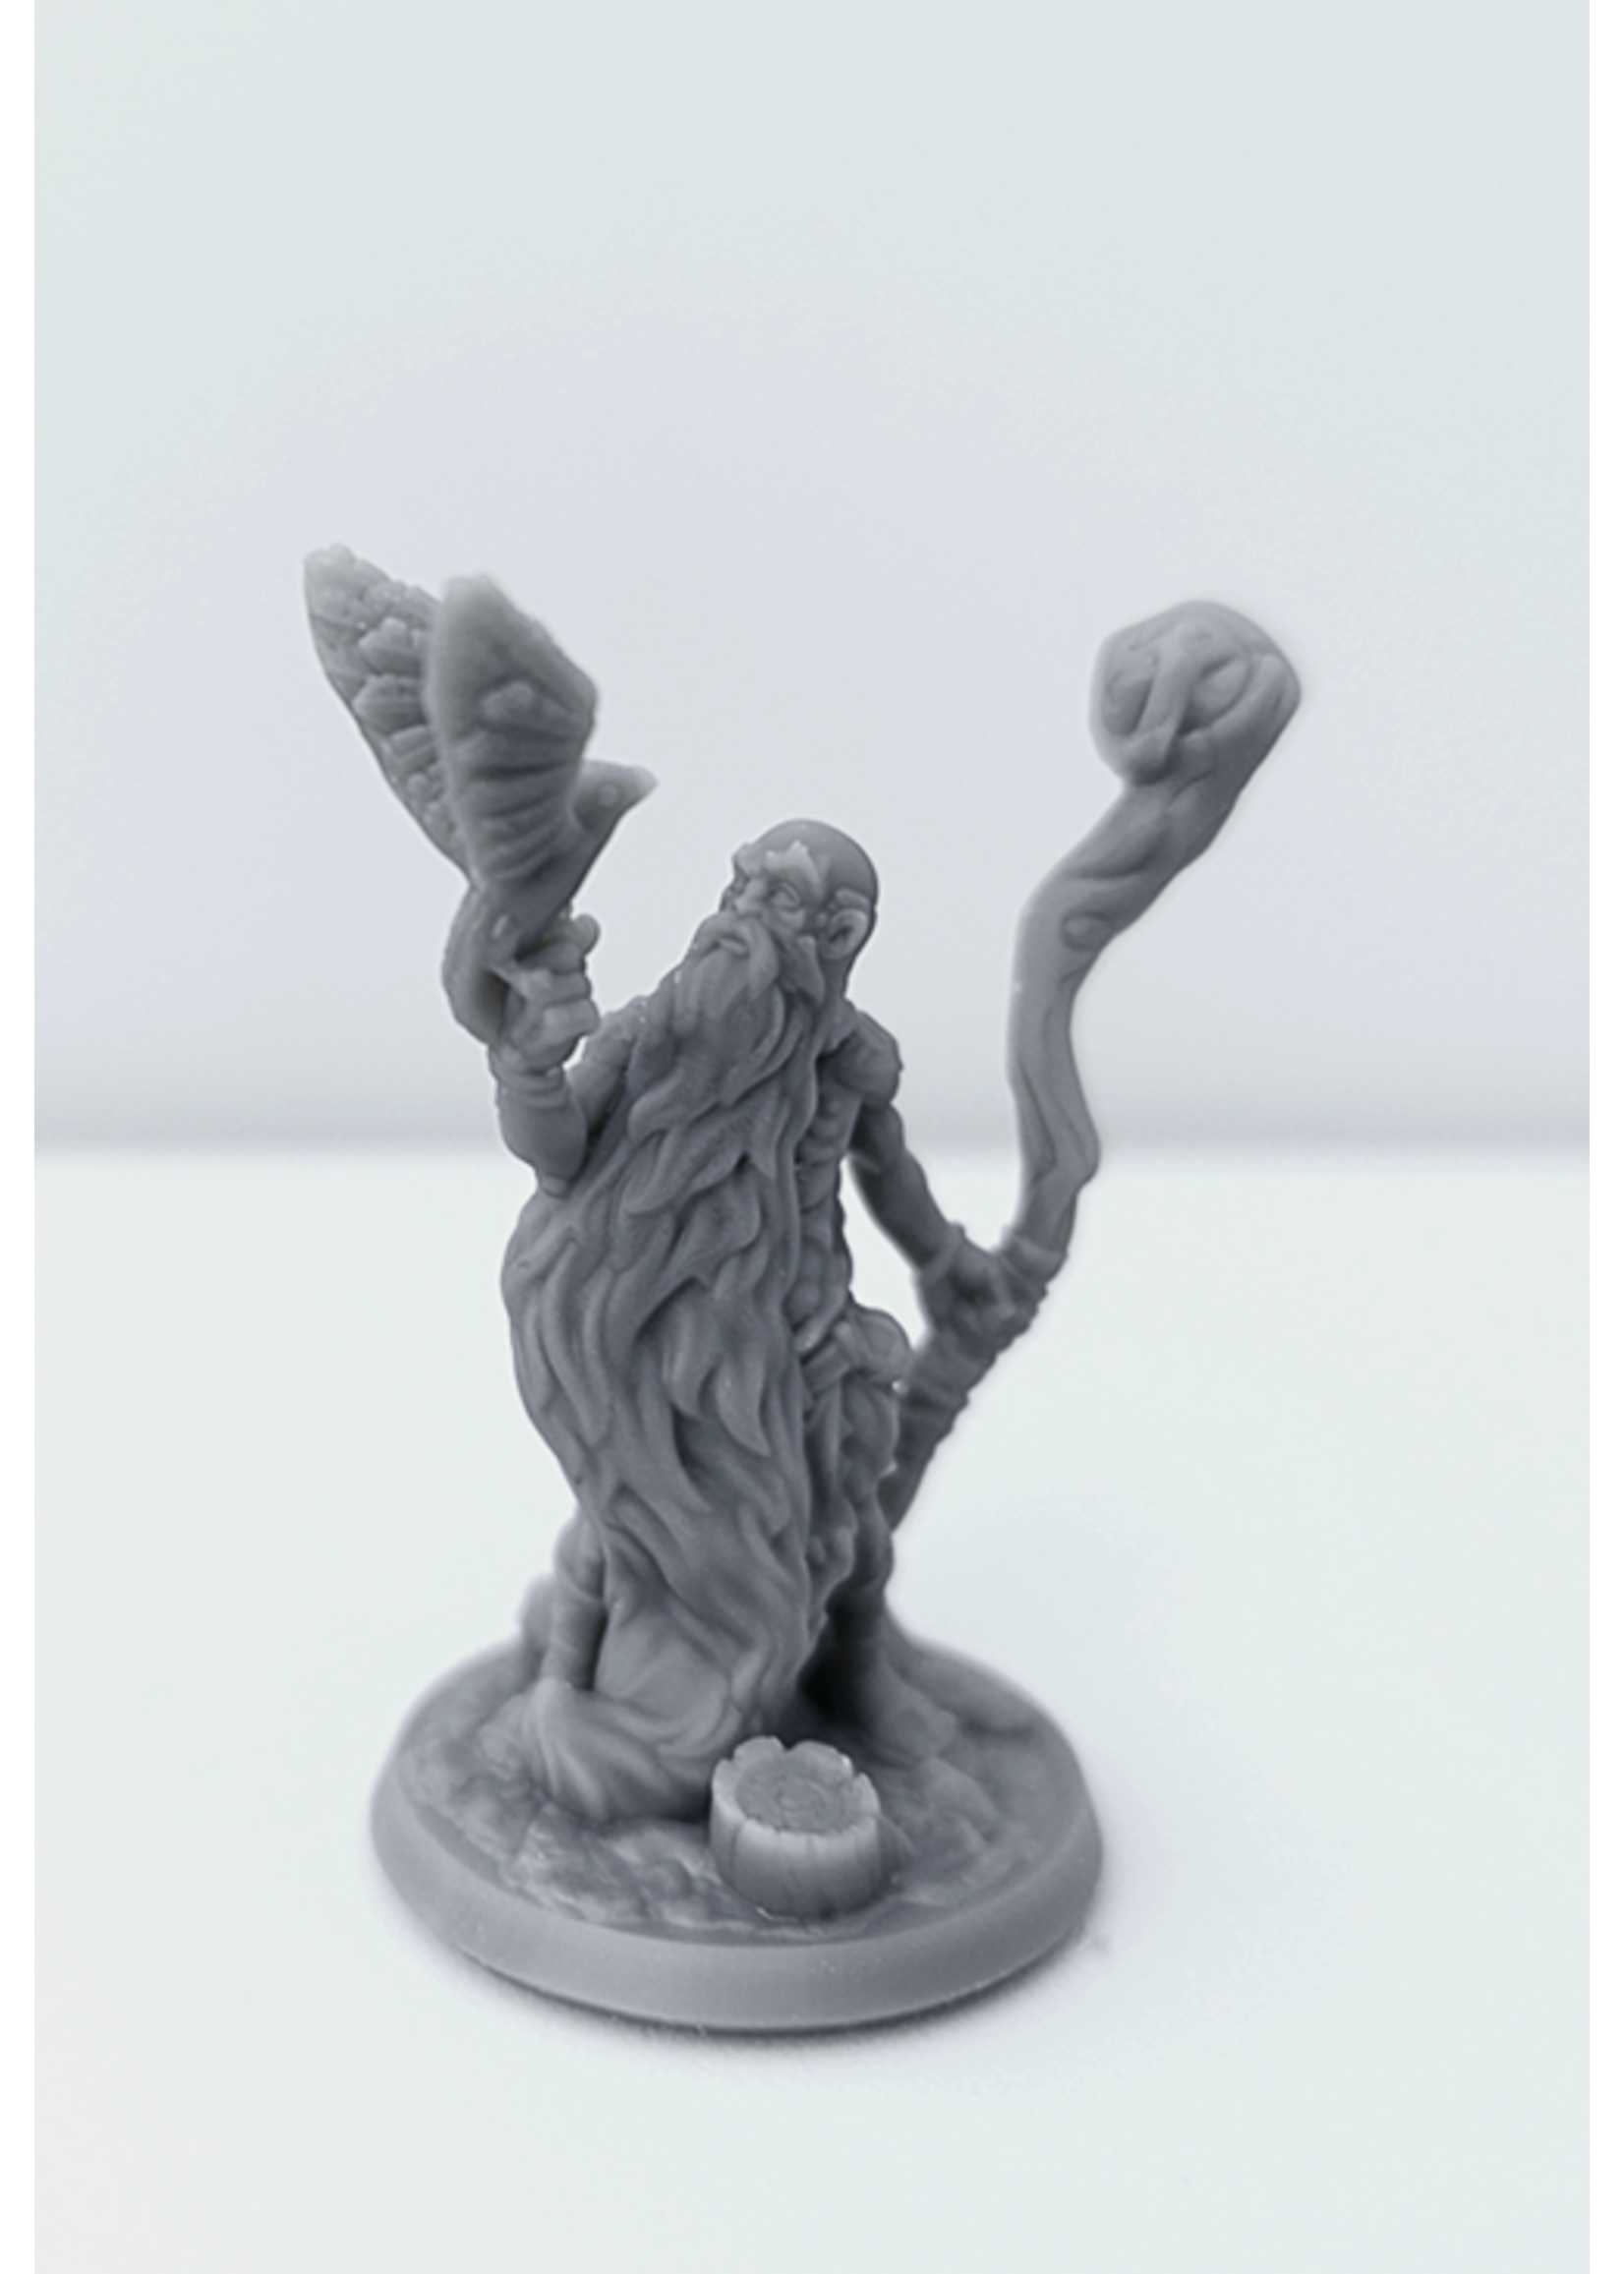 3D Printed Miniature - Druid Male01 - Dungeons & Dragons - Hero of the Realm KS